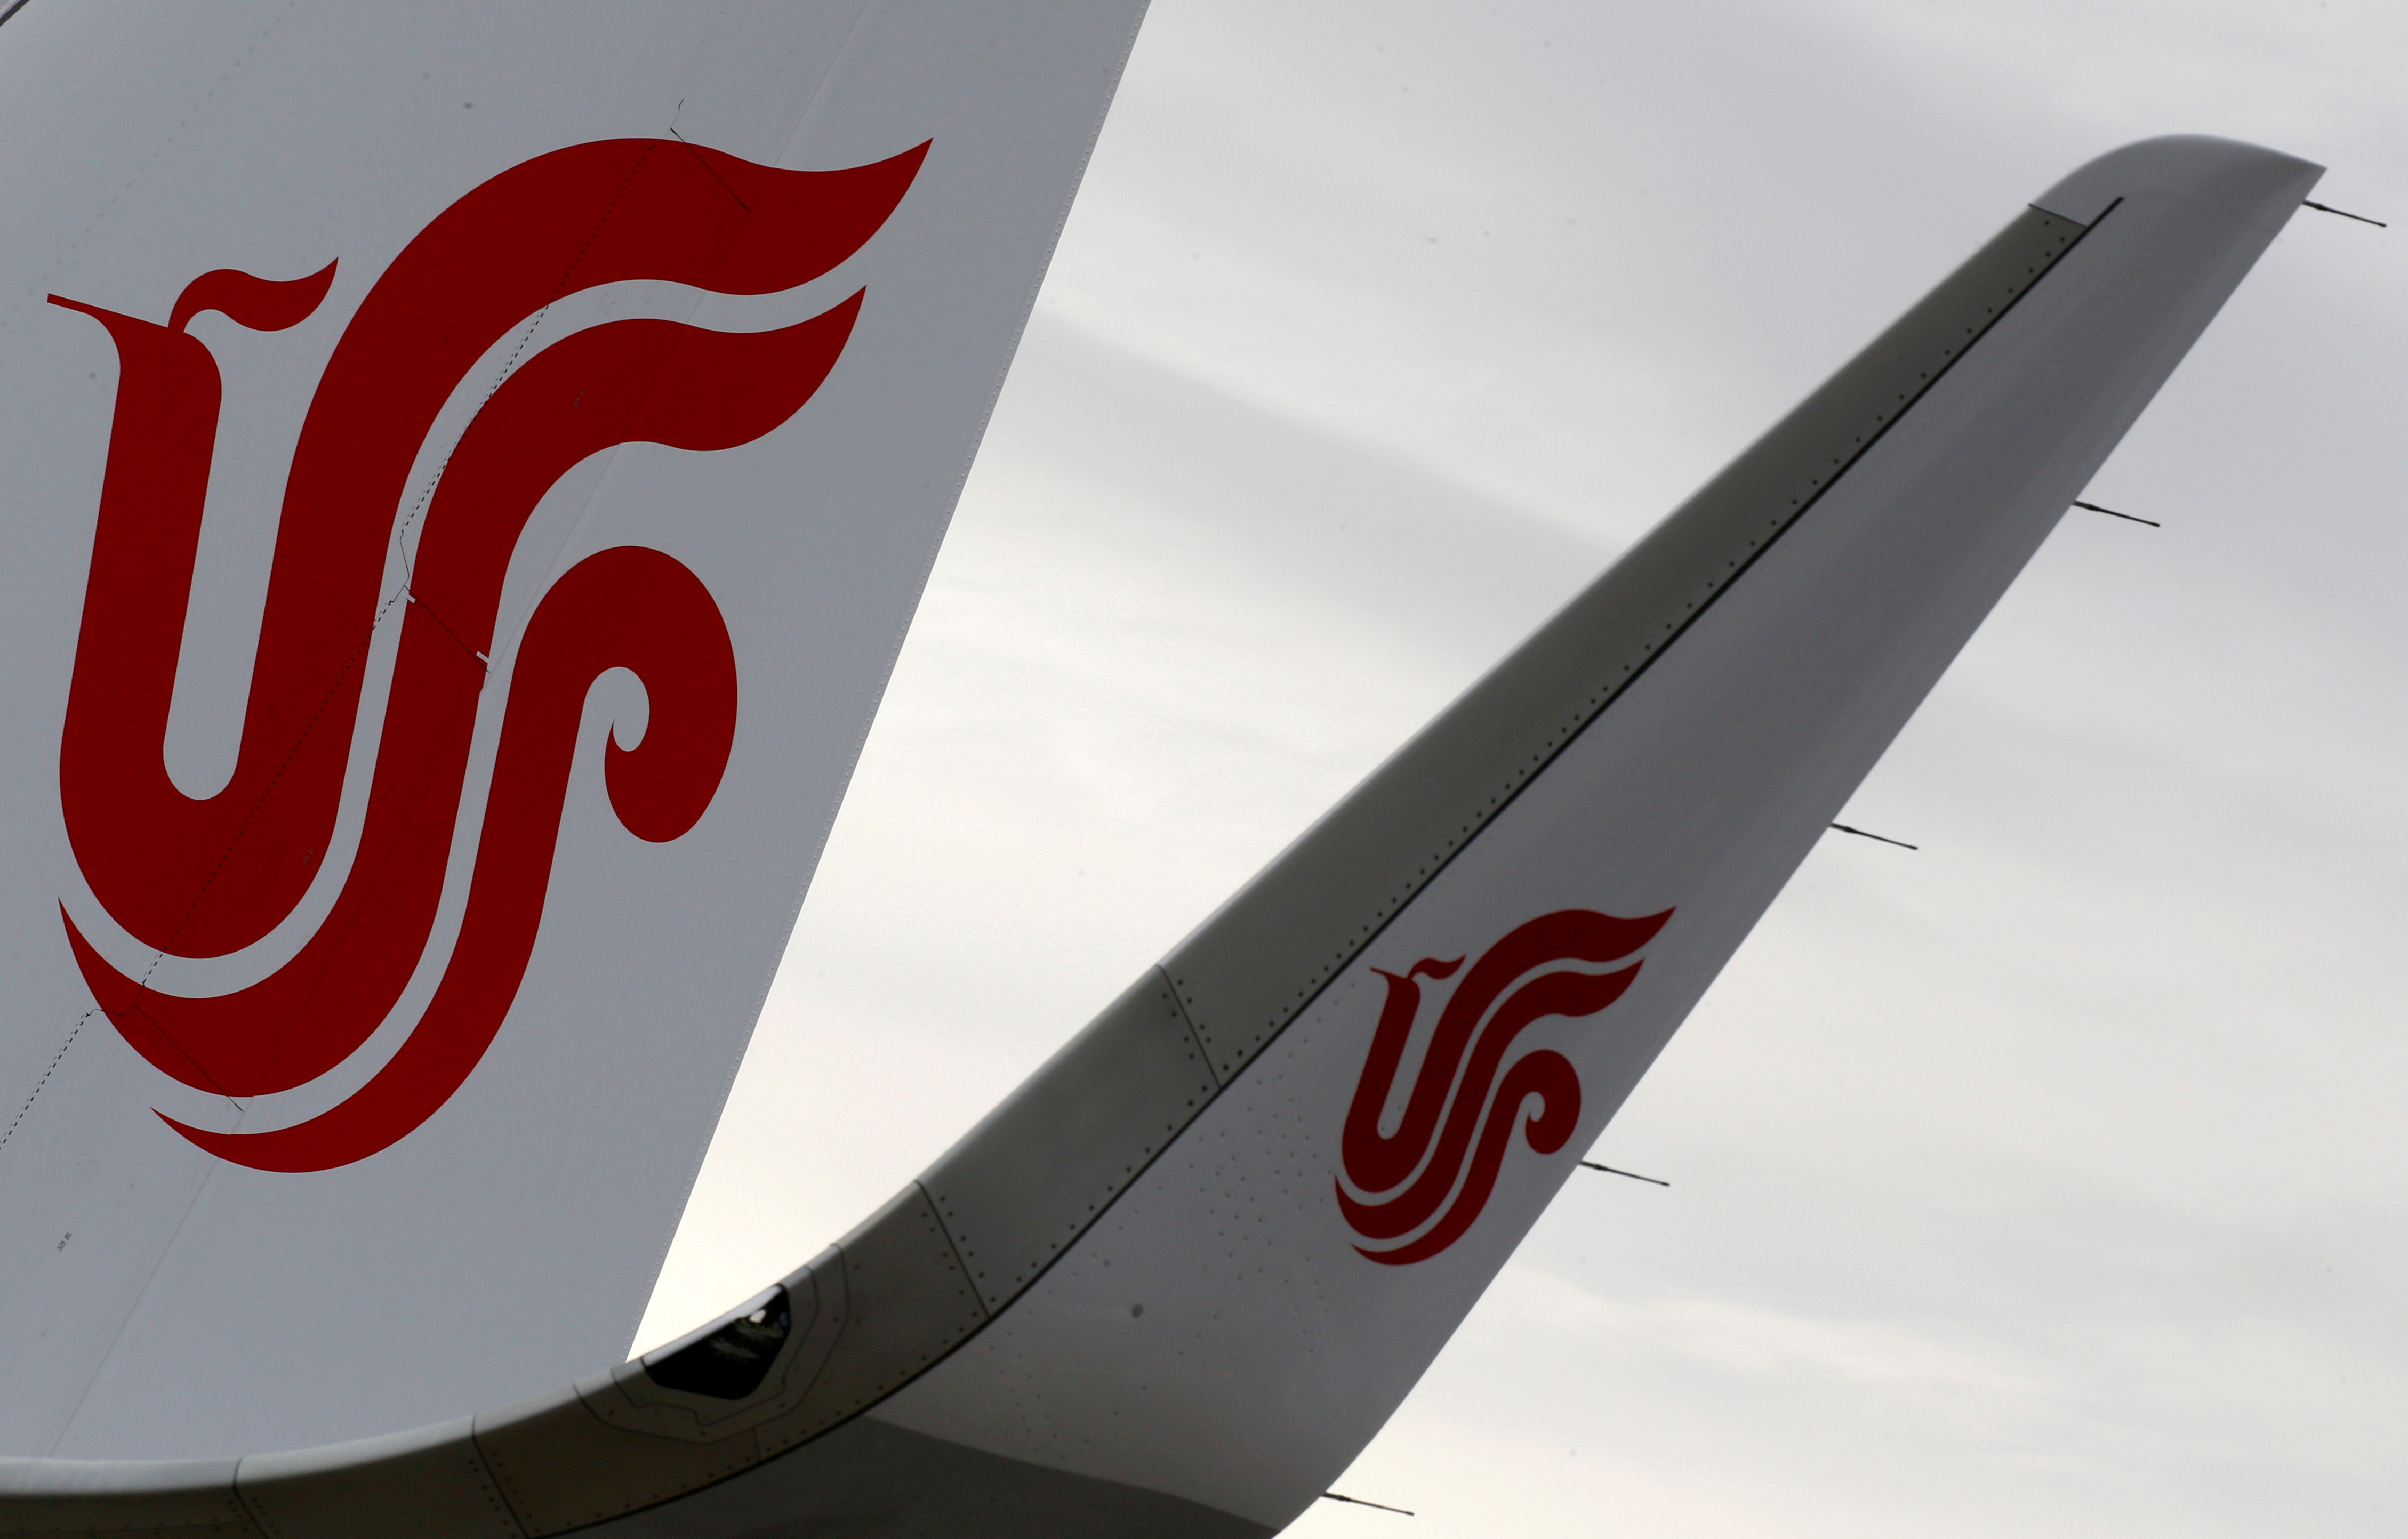 The logo of Air China is pictured on a tail of an airplane parked at the aircraft builder's headquarters of Airbus in Colomiers near Toulouse, France, November 15, 2019. REUTERS/Regis Duvignau